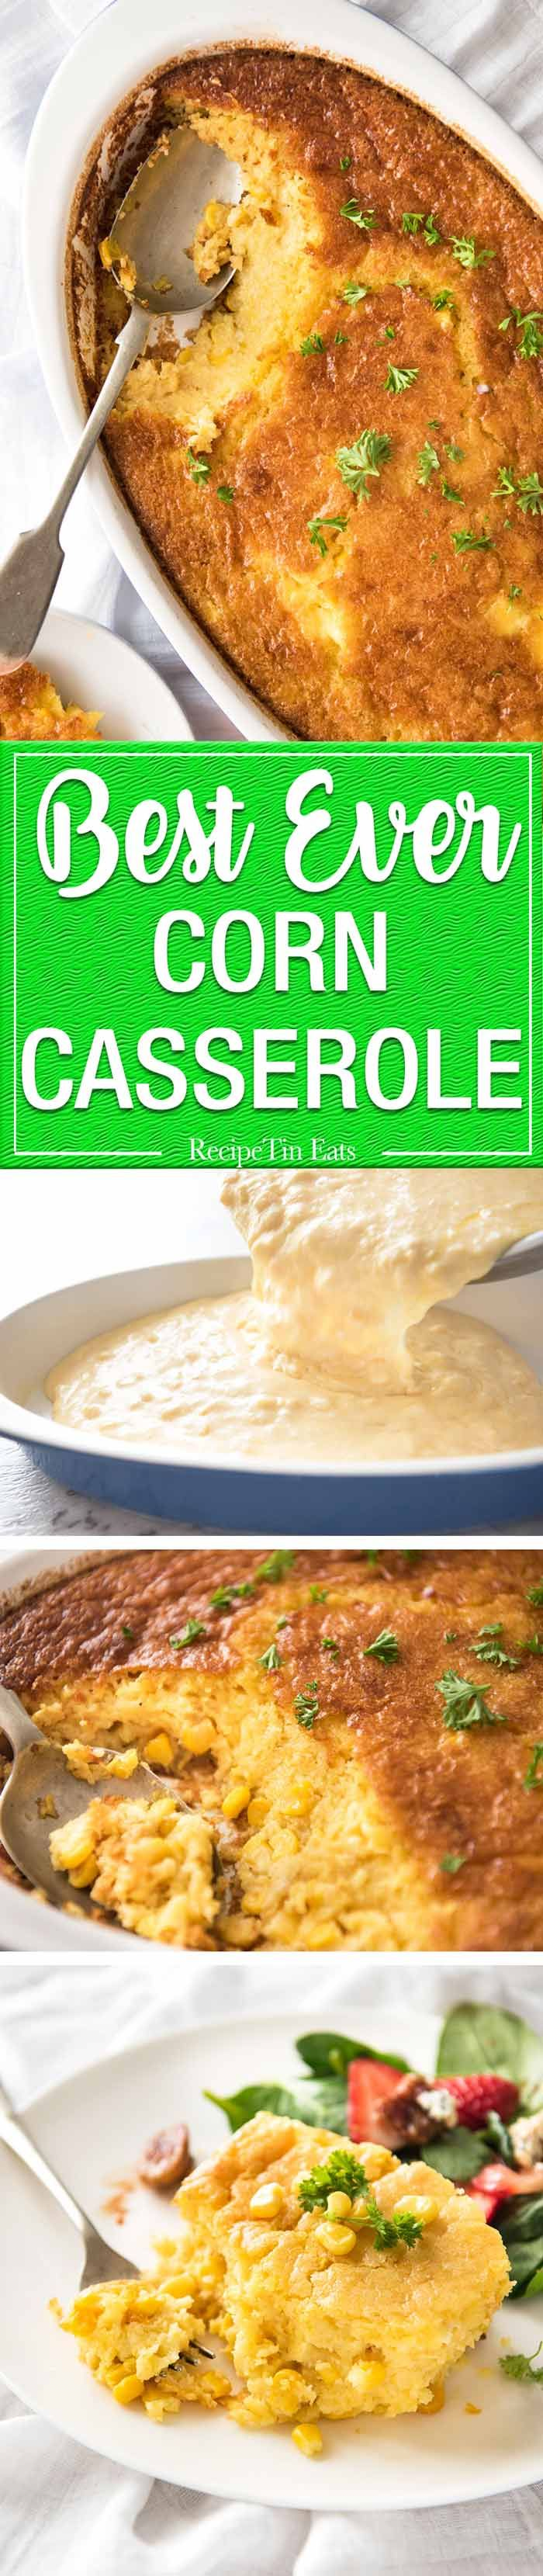 This Creamy Corn Casserole is a fantastic side dish! It's like a cross between corn bread and soufflé. Sweet and savoury, tender and moist inside, with a golden top. Classic Thanksgiving side dish! www.recipetineats.com